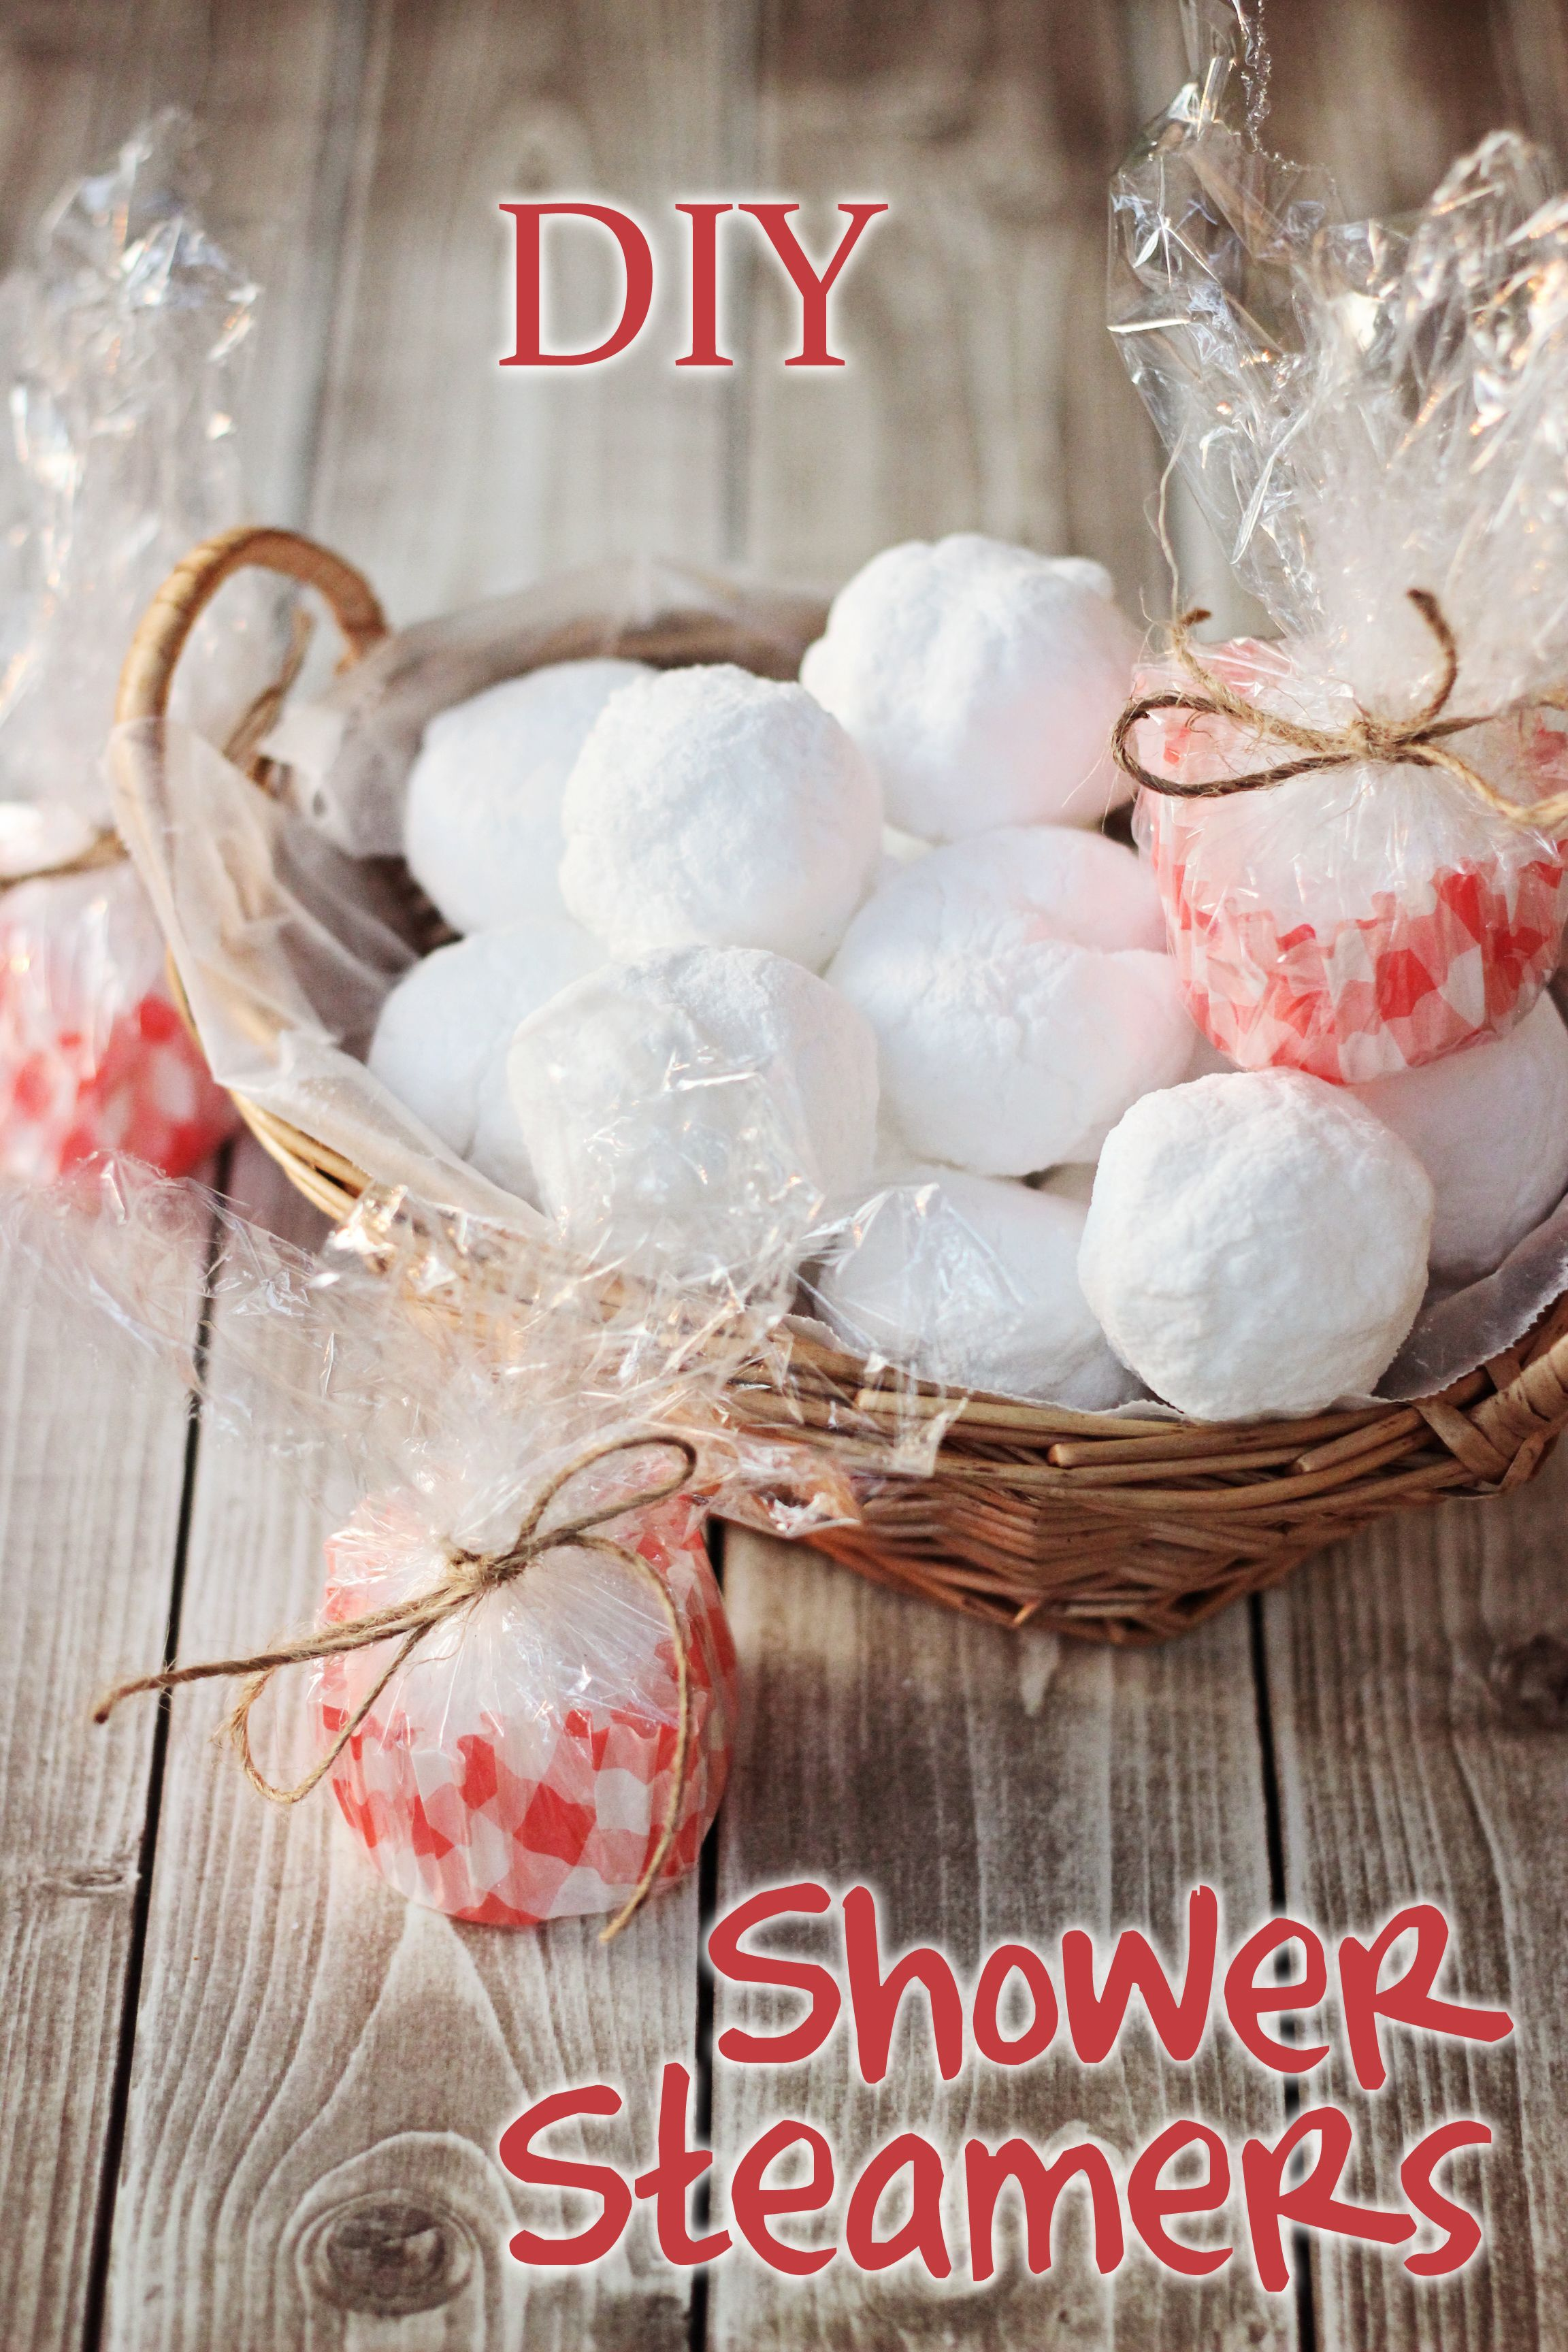 These Easy Diy Shower Steamers For Colds Don T Require A Mold Or Special Tools To Create With Images Shower Steamers Diy Shower Steamers